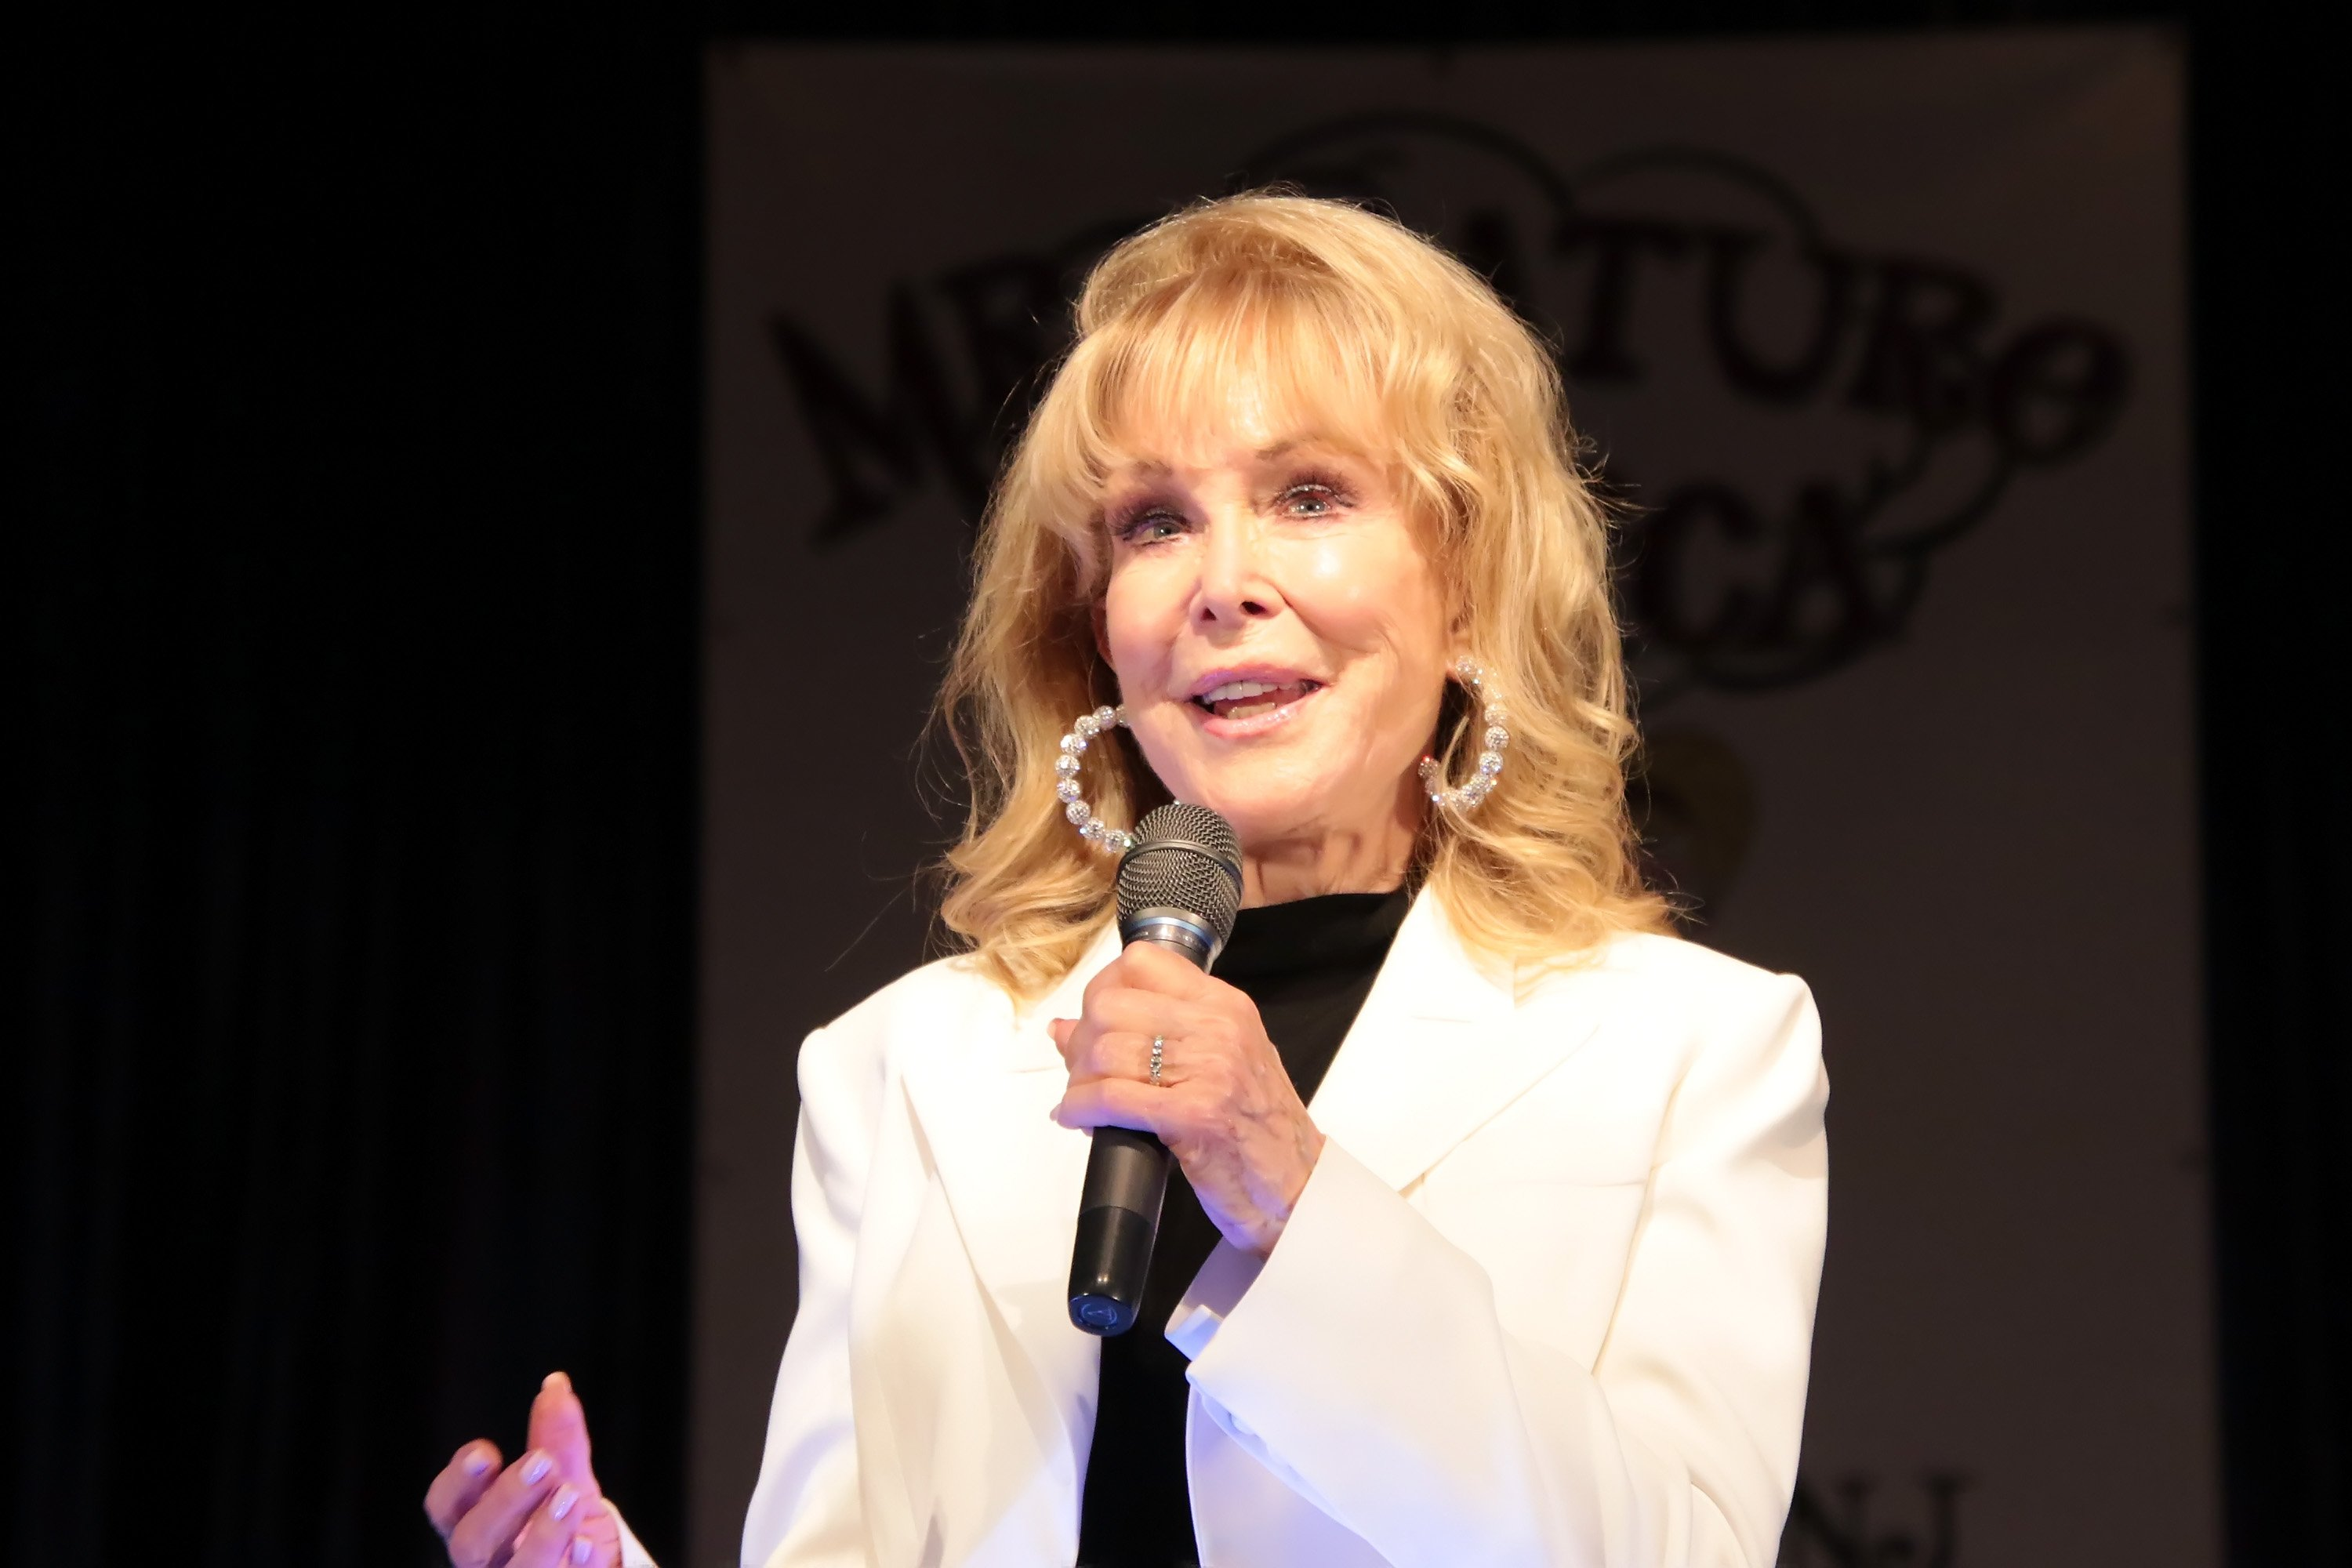 Barbara Eden, Special Guest & Emcee hosts the 2019 Mr. Mature America Pageant at the at Ocean City Music Pier on April 13, 2019 in Ocean City, New Jersey   Photo: Getty Images